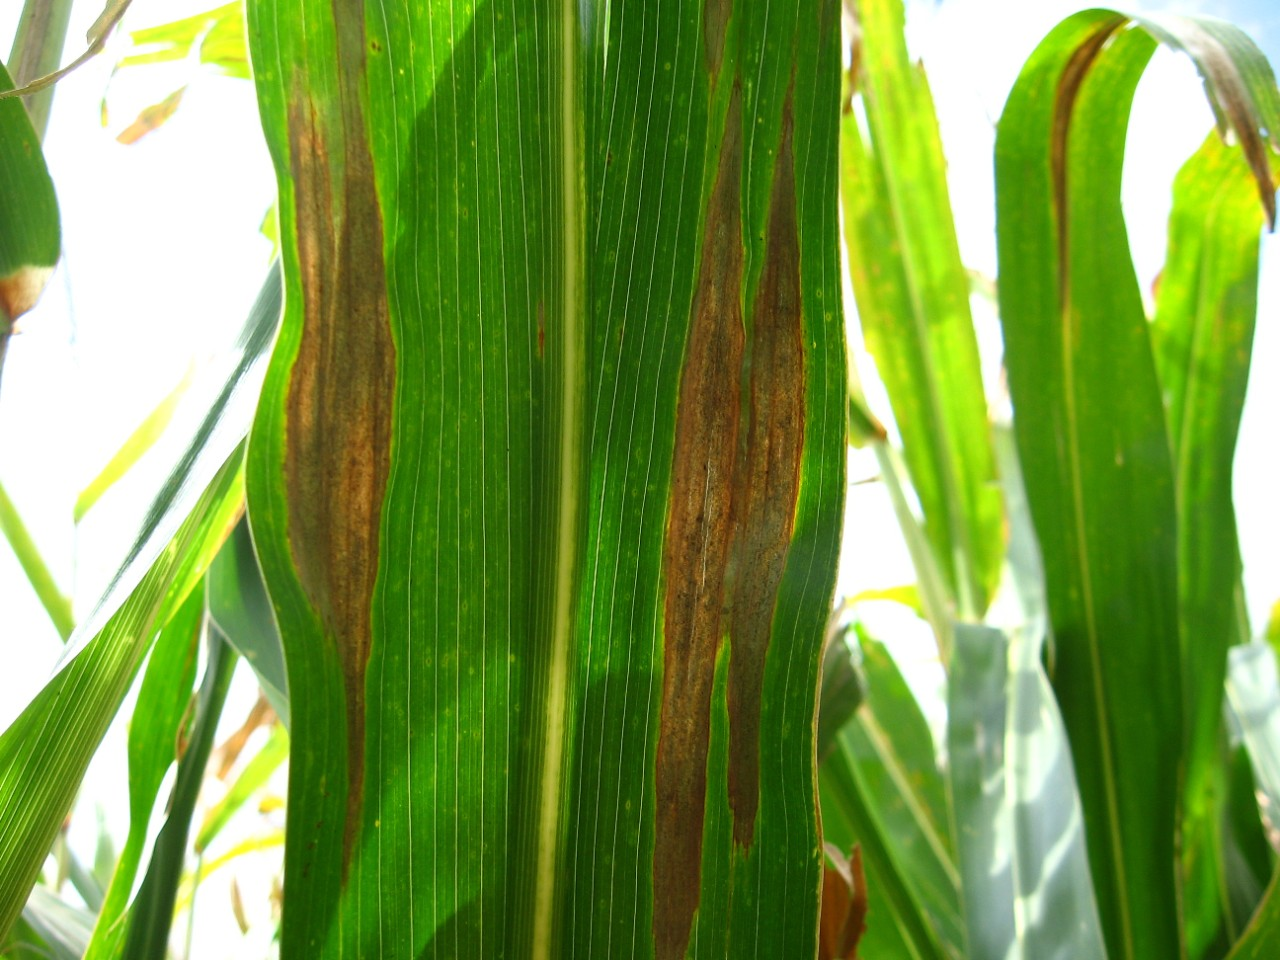 Figure 1. Elliptical or cigar-shaped lesions typical of northern corn leaf blight.